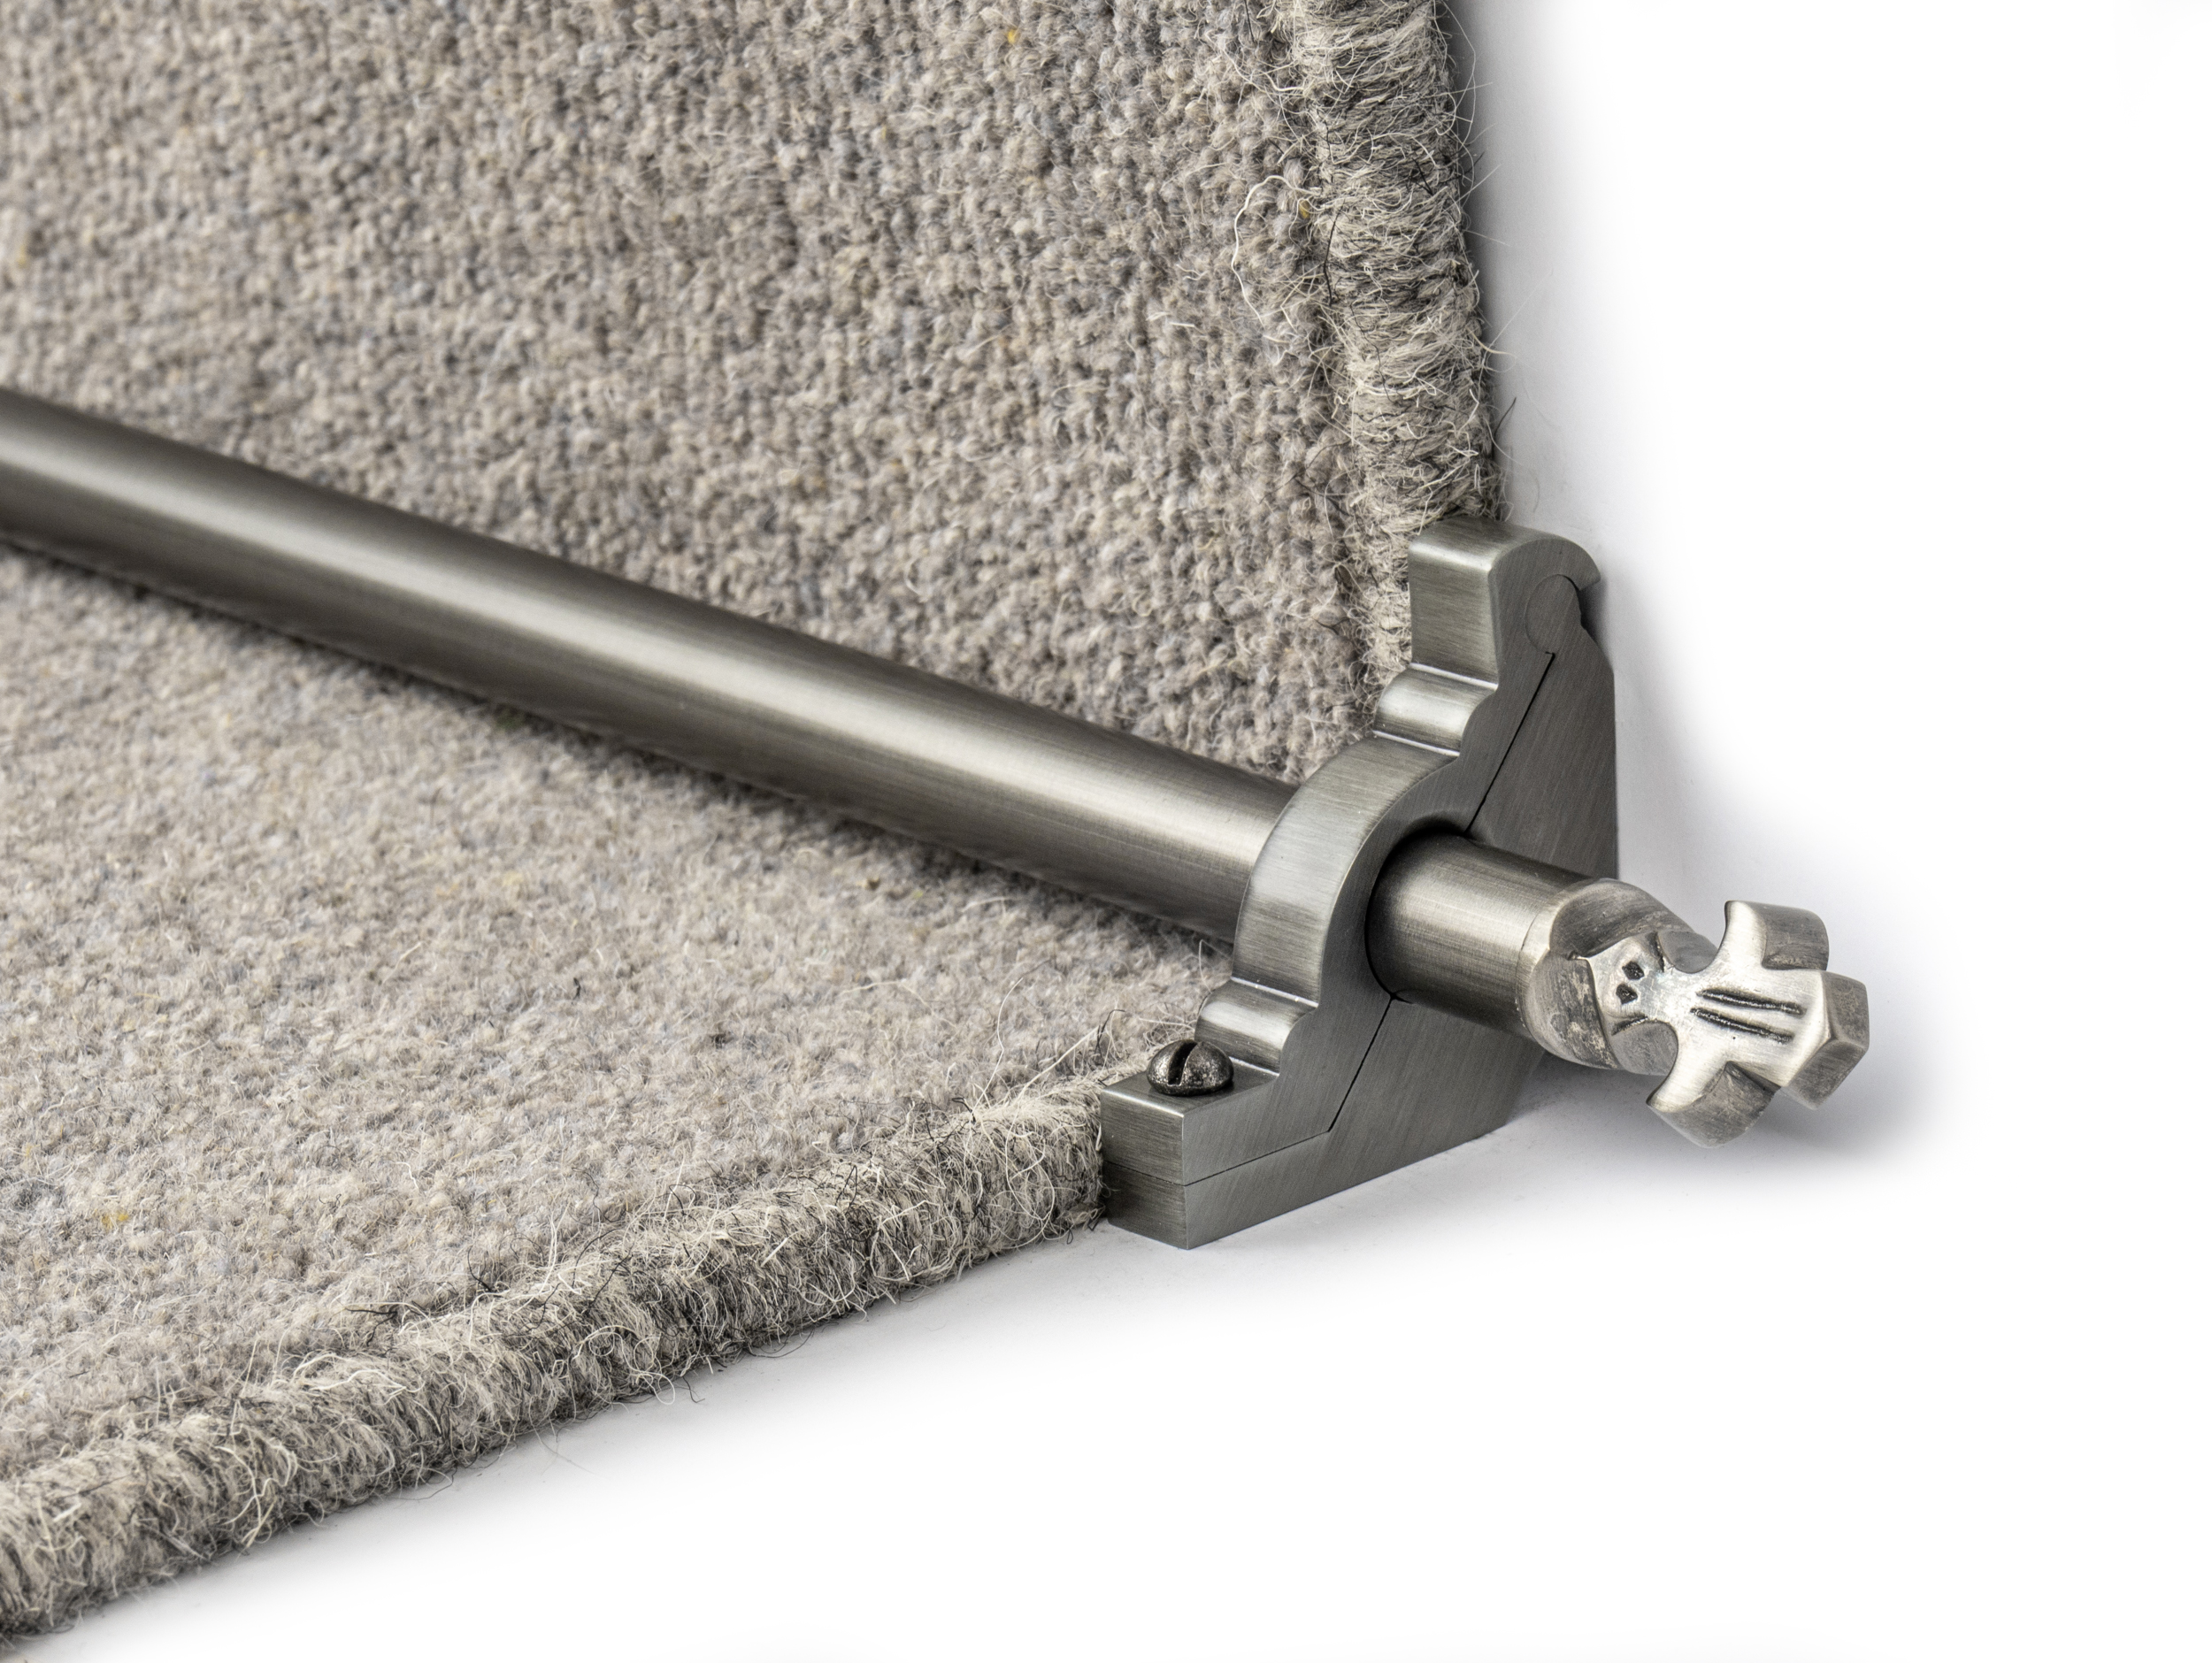 stairrods-brushed-pewter-country-fdl-plain.jpg